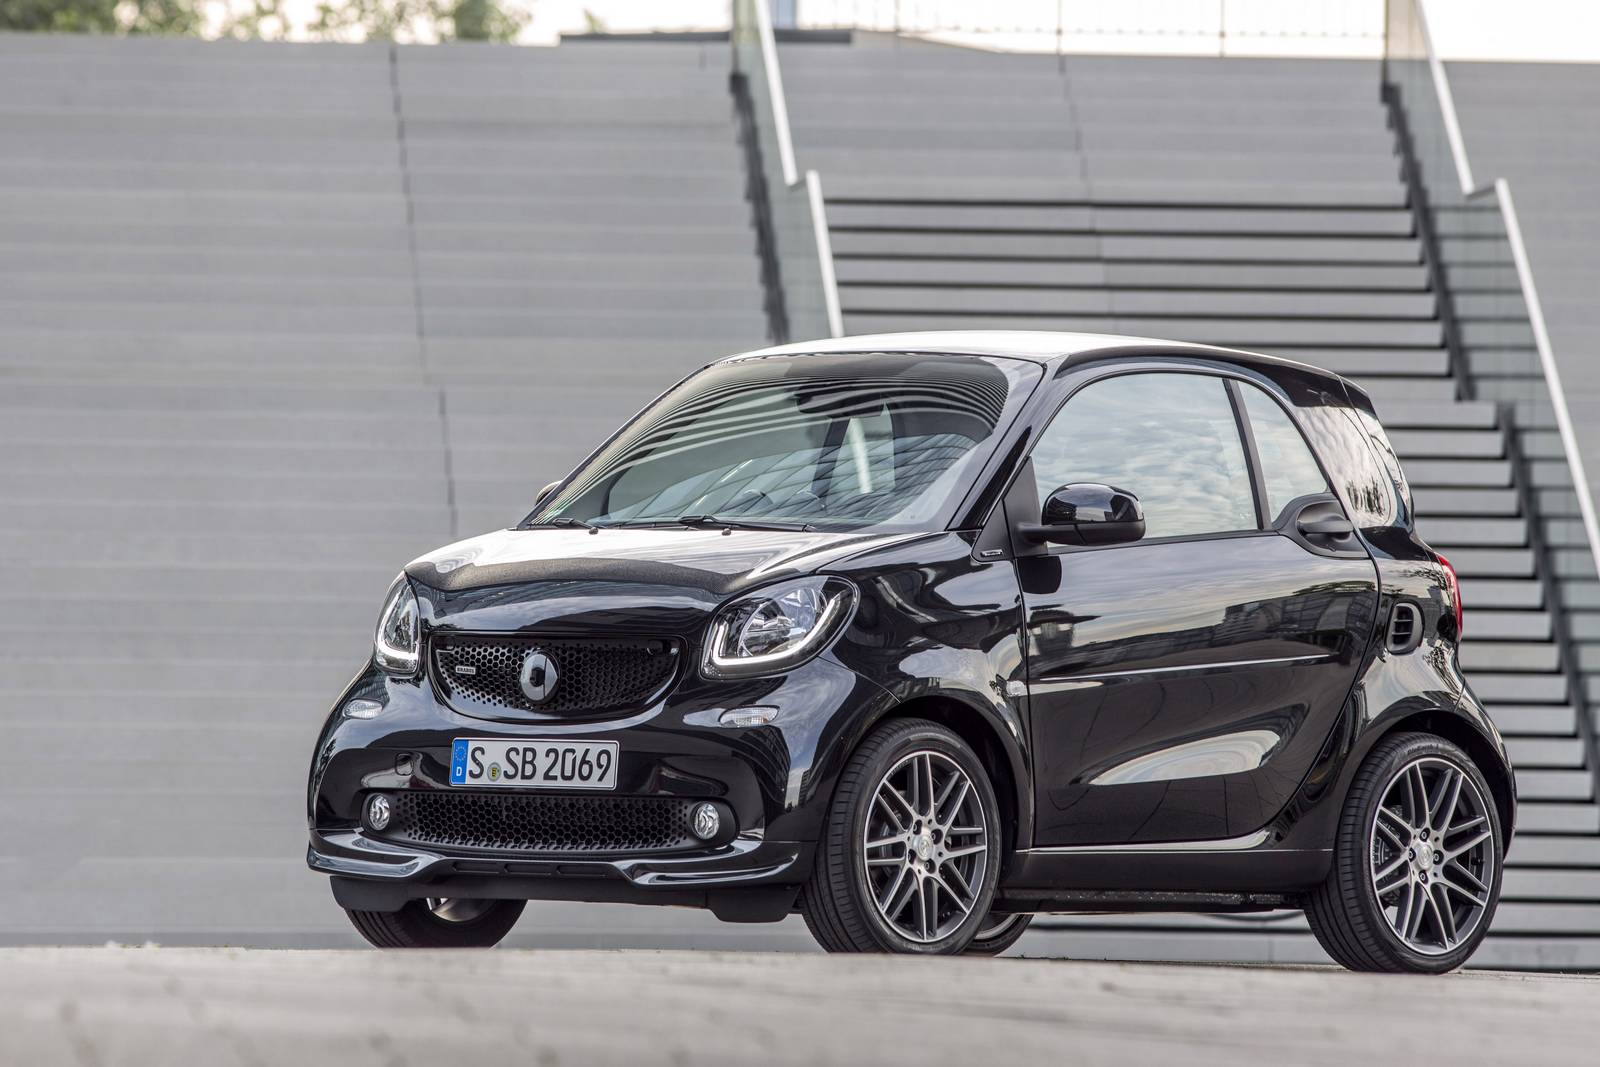 2017 smart brabus fortwo review gtspirit. Black Bedroom Furniture Sets. Home Design Ideas